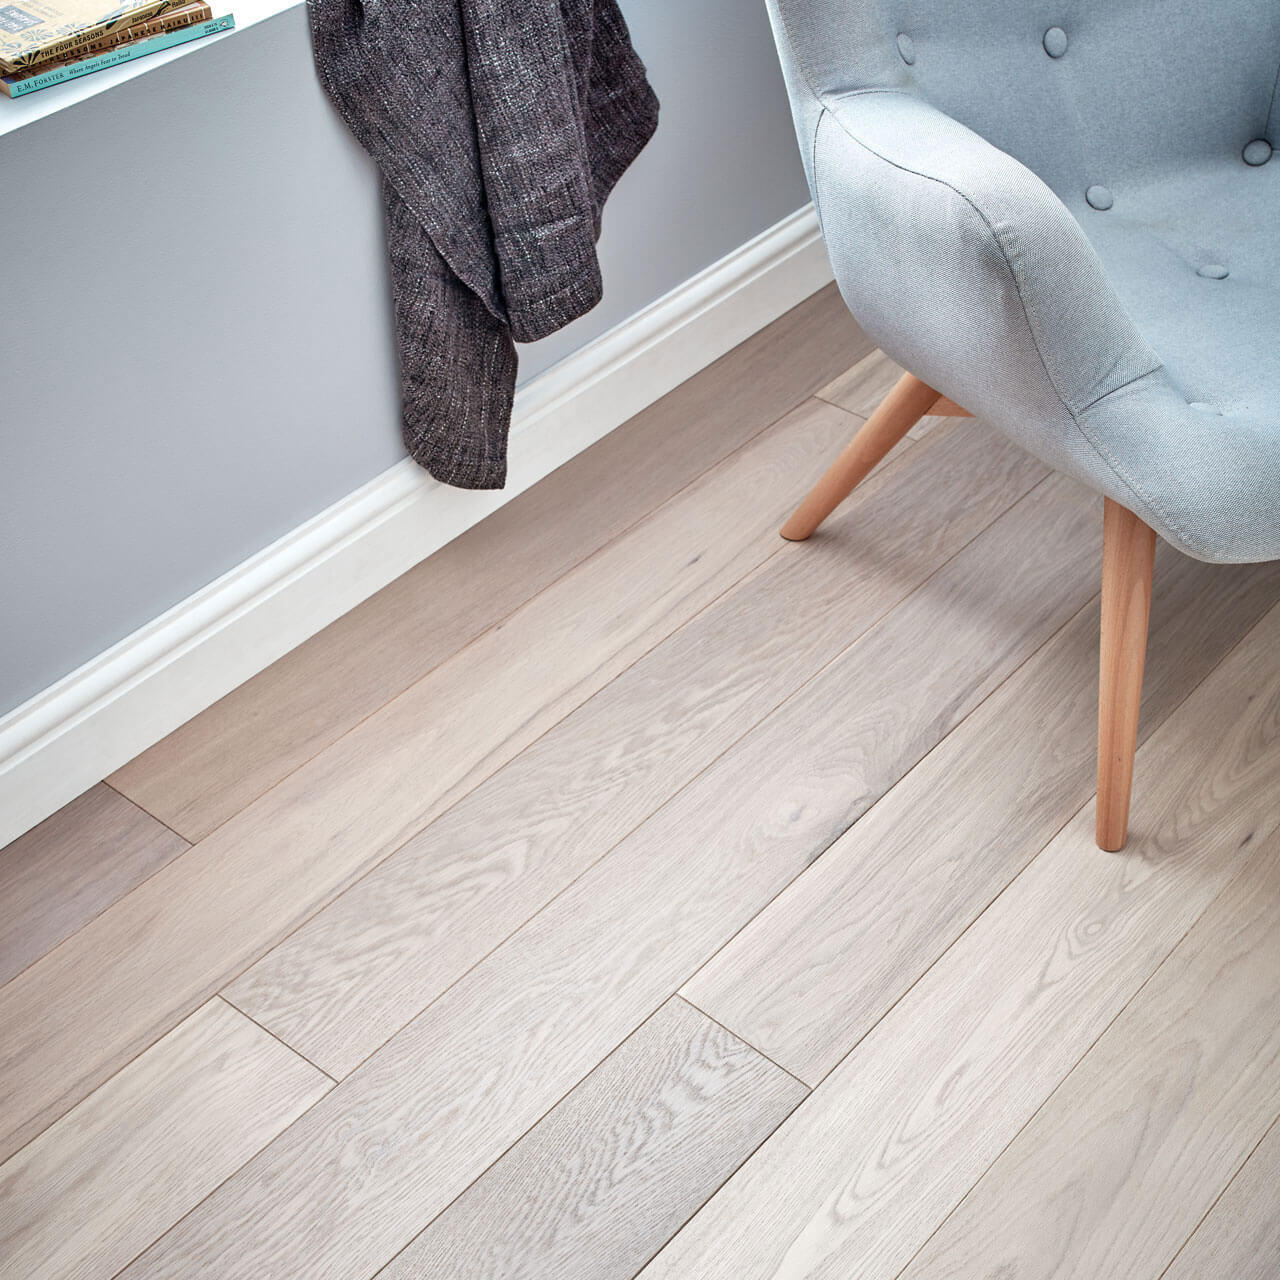 Woodpecker Harlech White Oiled Oak Engineered Wood Flooring 190mm 35-HWO-189